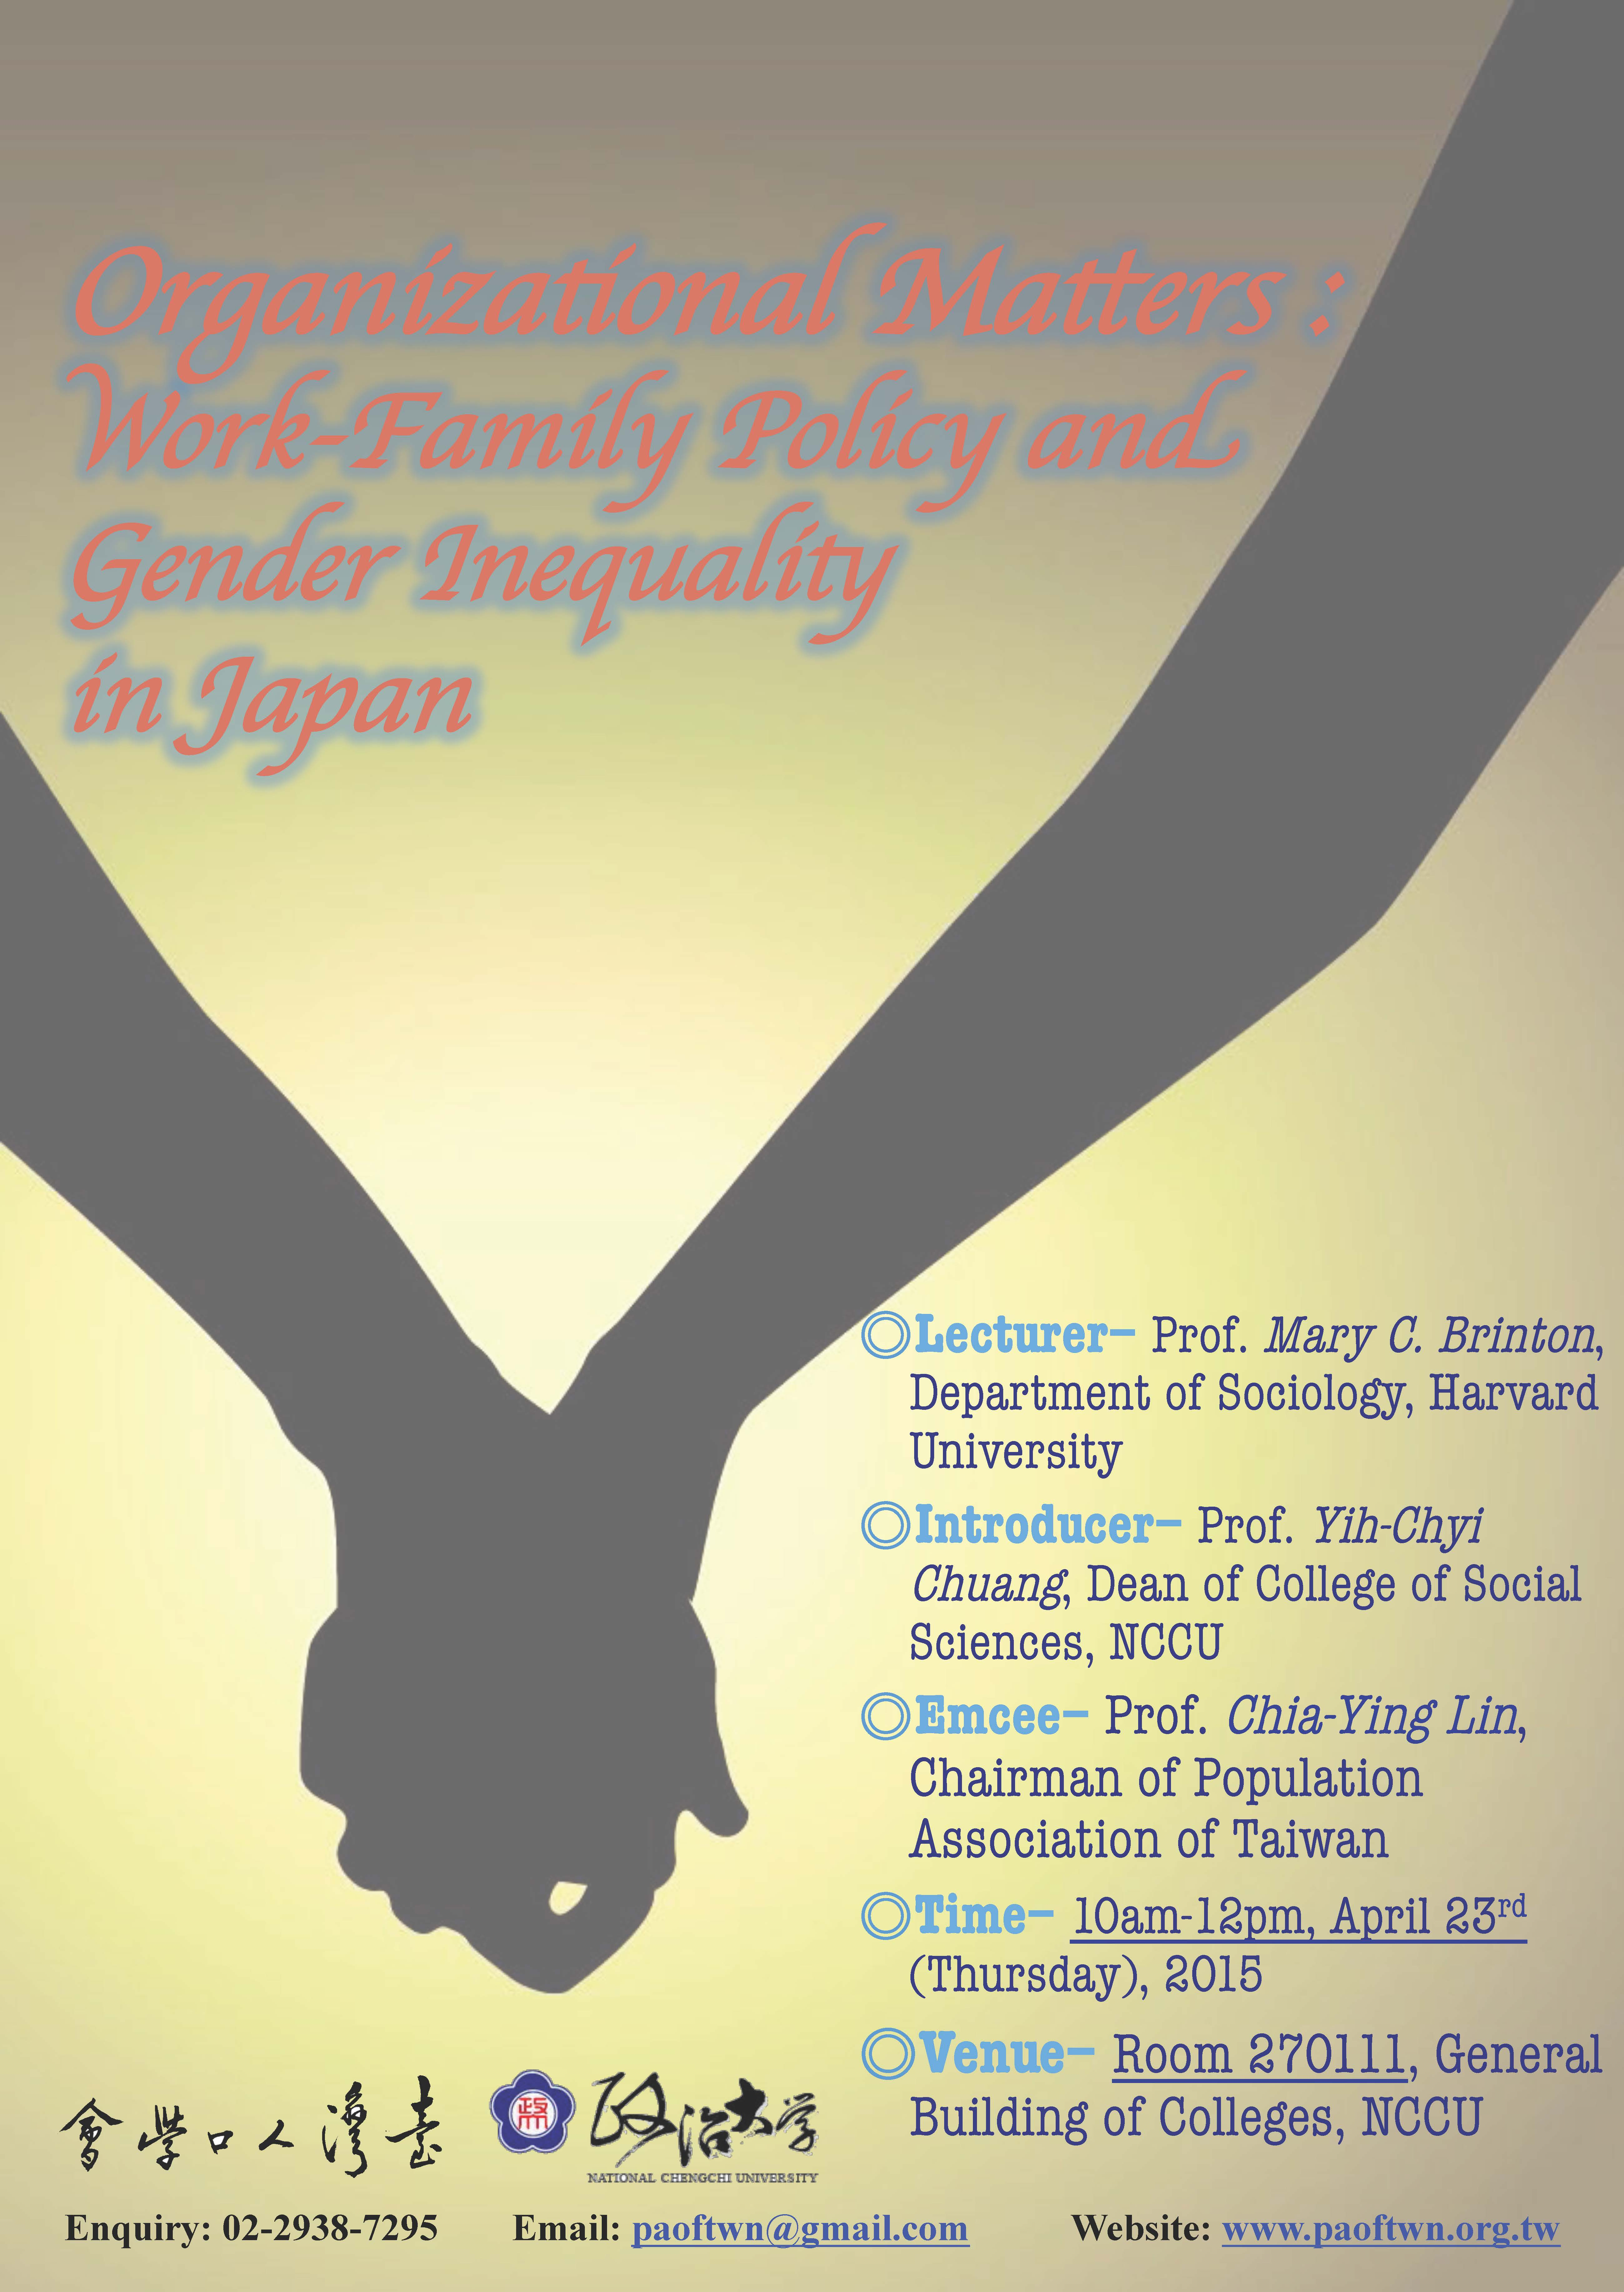 Organization Matters: Work-Family Policy and Gender Inequality in Japan